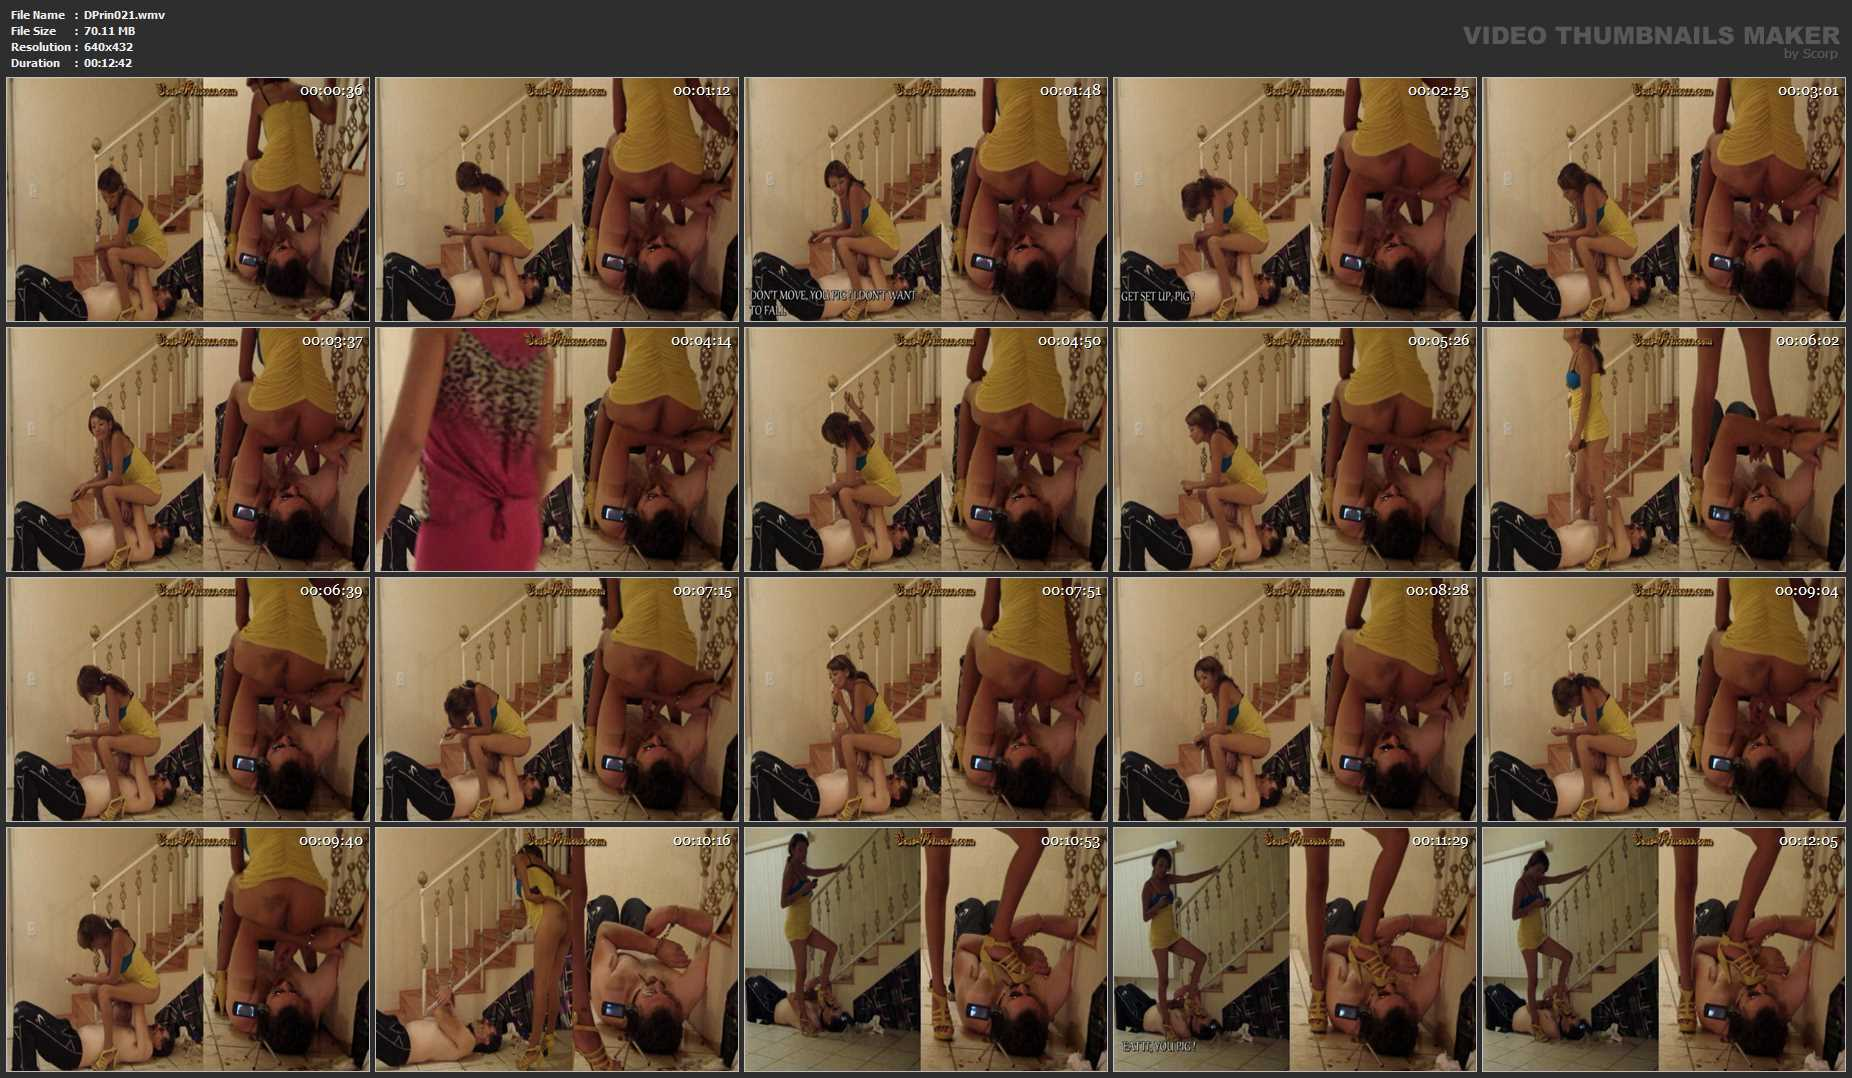 [DOM-PRINCESS] Shiteater handcuffed to the Stairway Part 7 Britany [SD][432p][WMV]